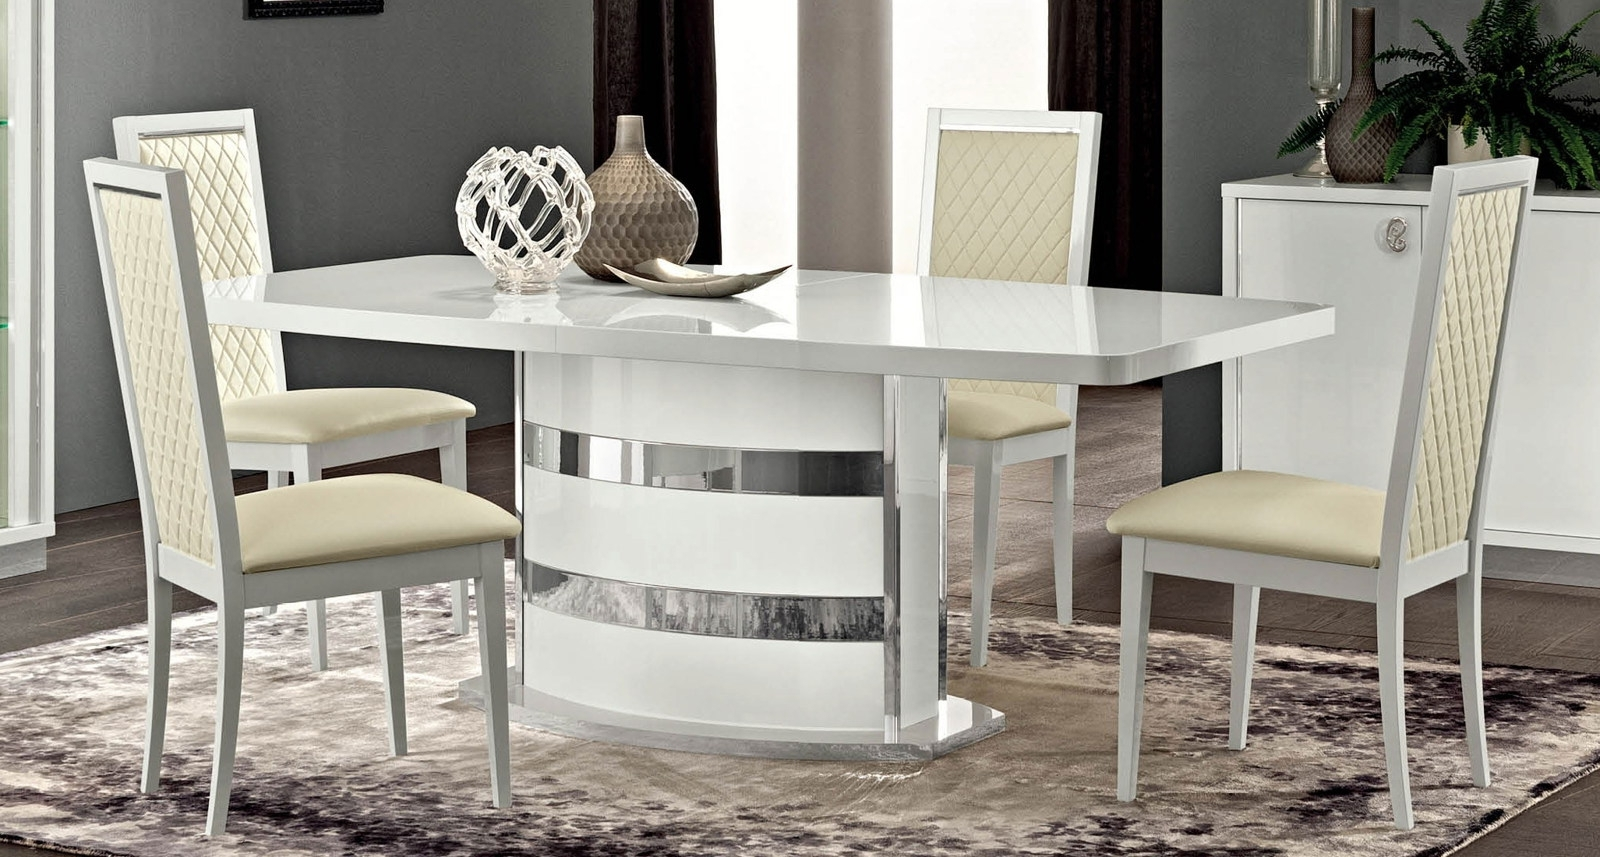 2017 Roma Dining Tables Regarding Esf Furniture Roma Dining Table In Whitedining Rooms Outlet (Gallery 1 of 25)